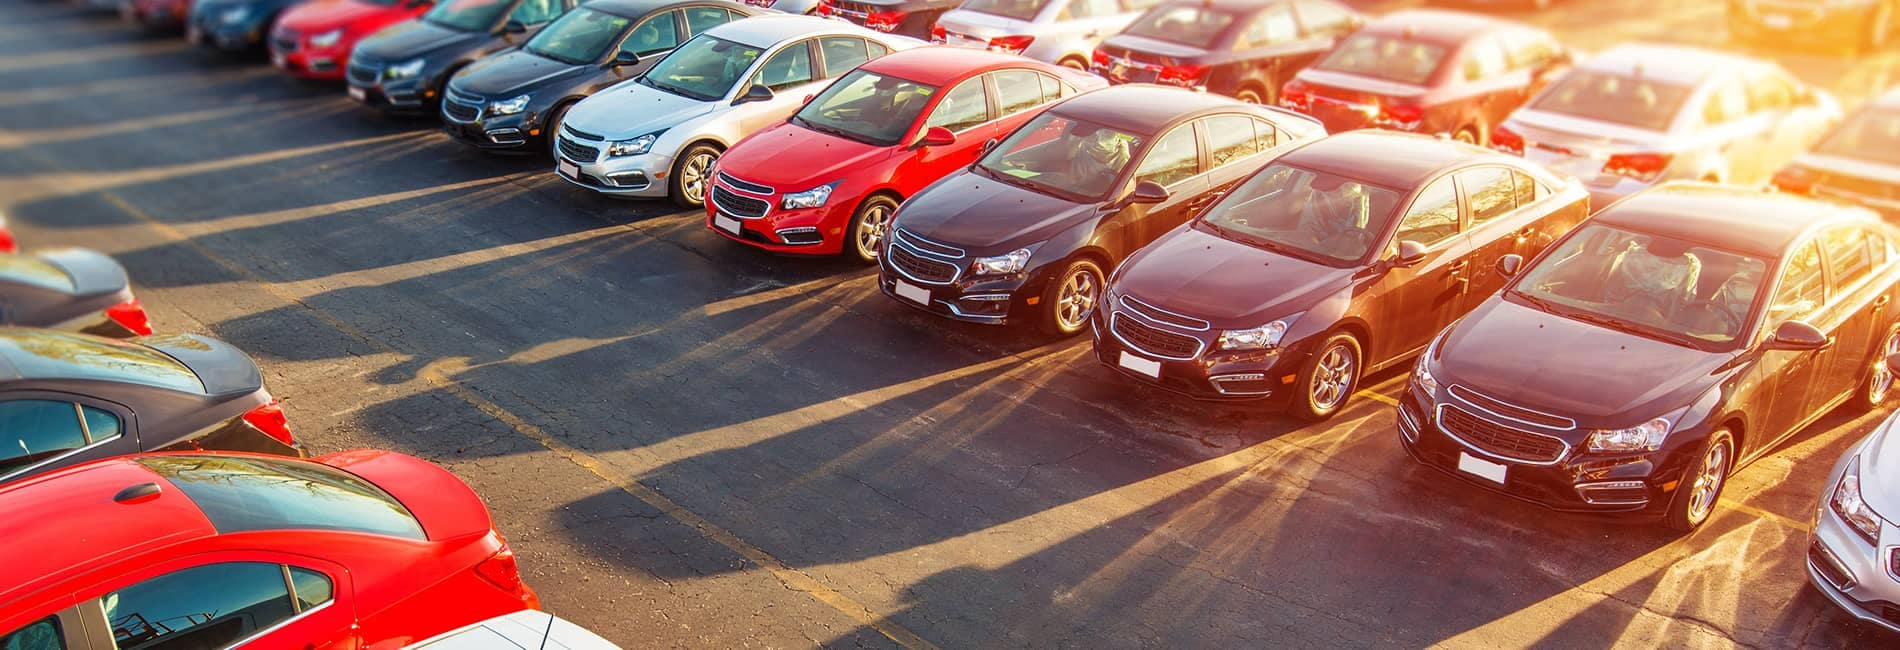 Used-Car-Sales-Lot-Banner